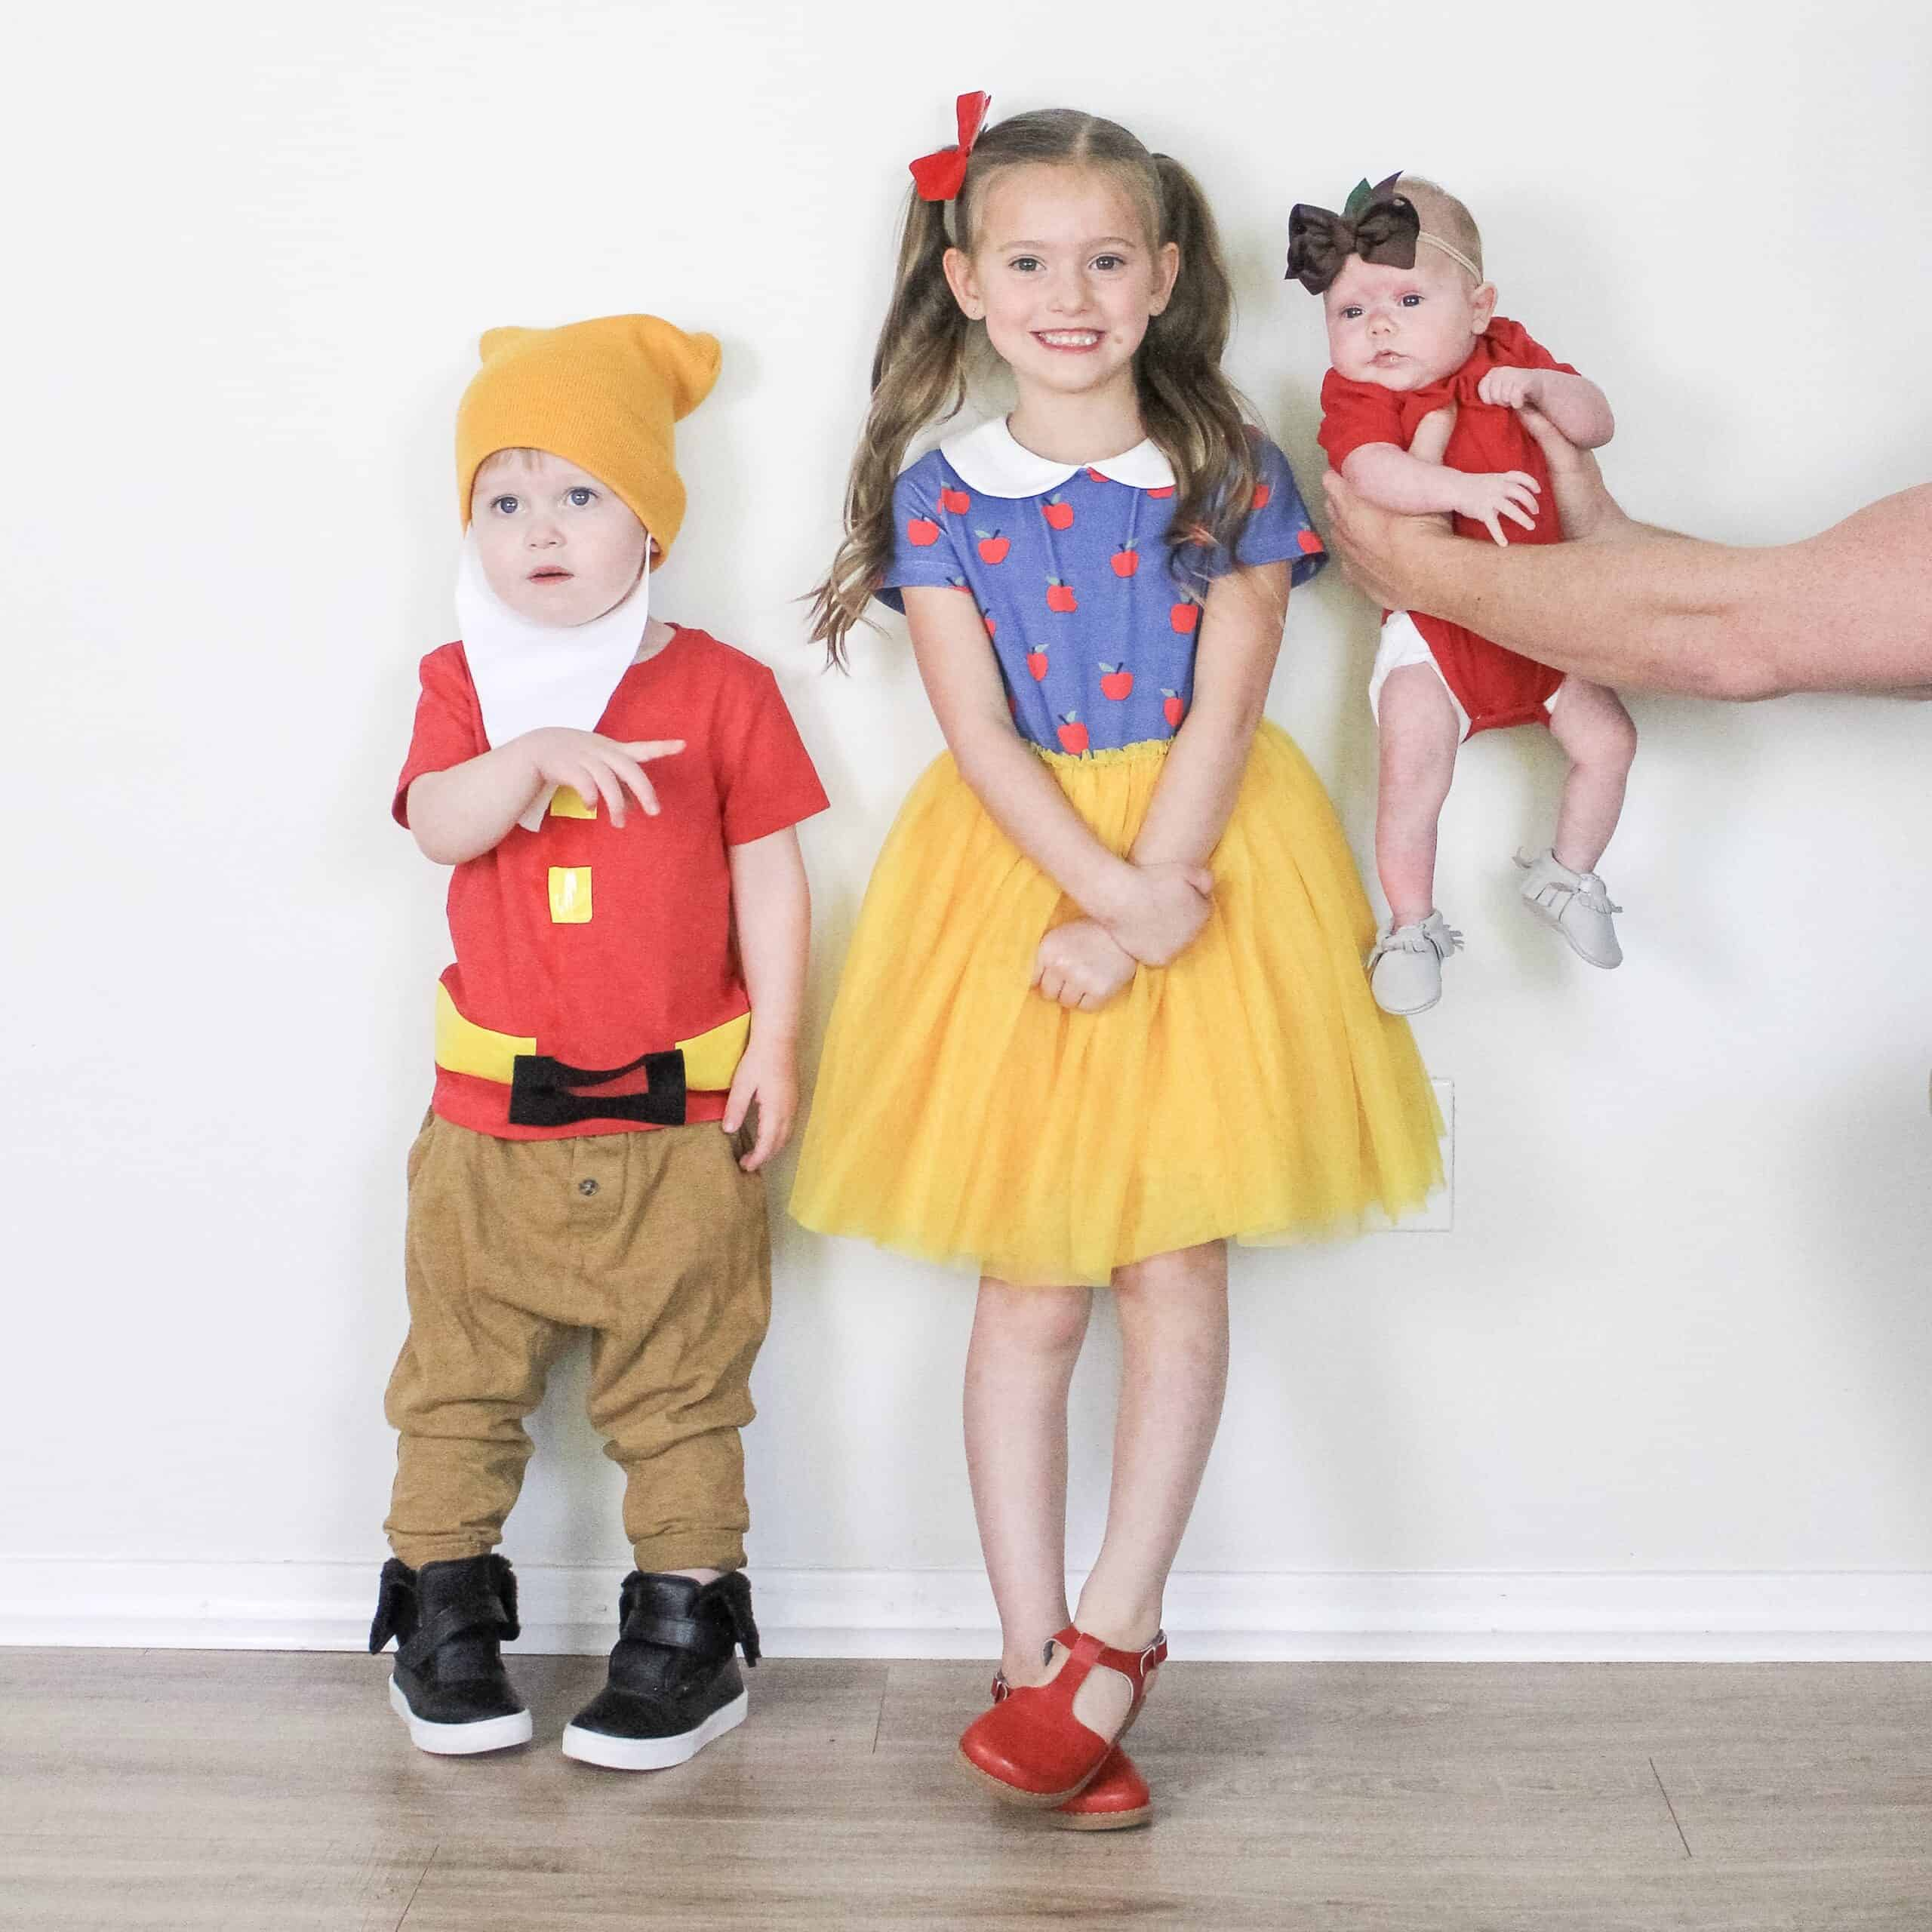 Snow White, a dwarf and apple costume